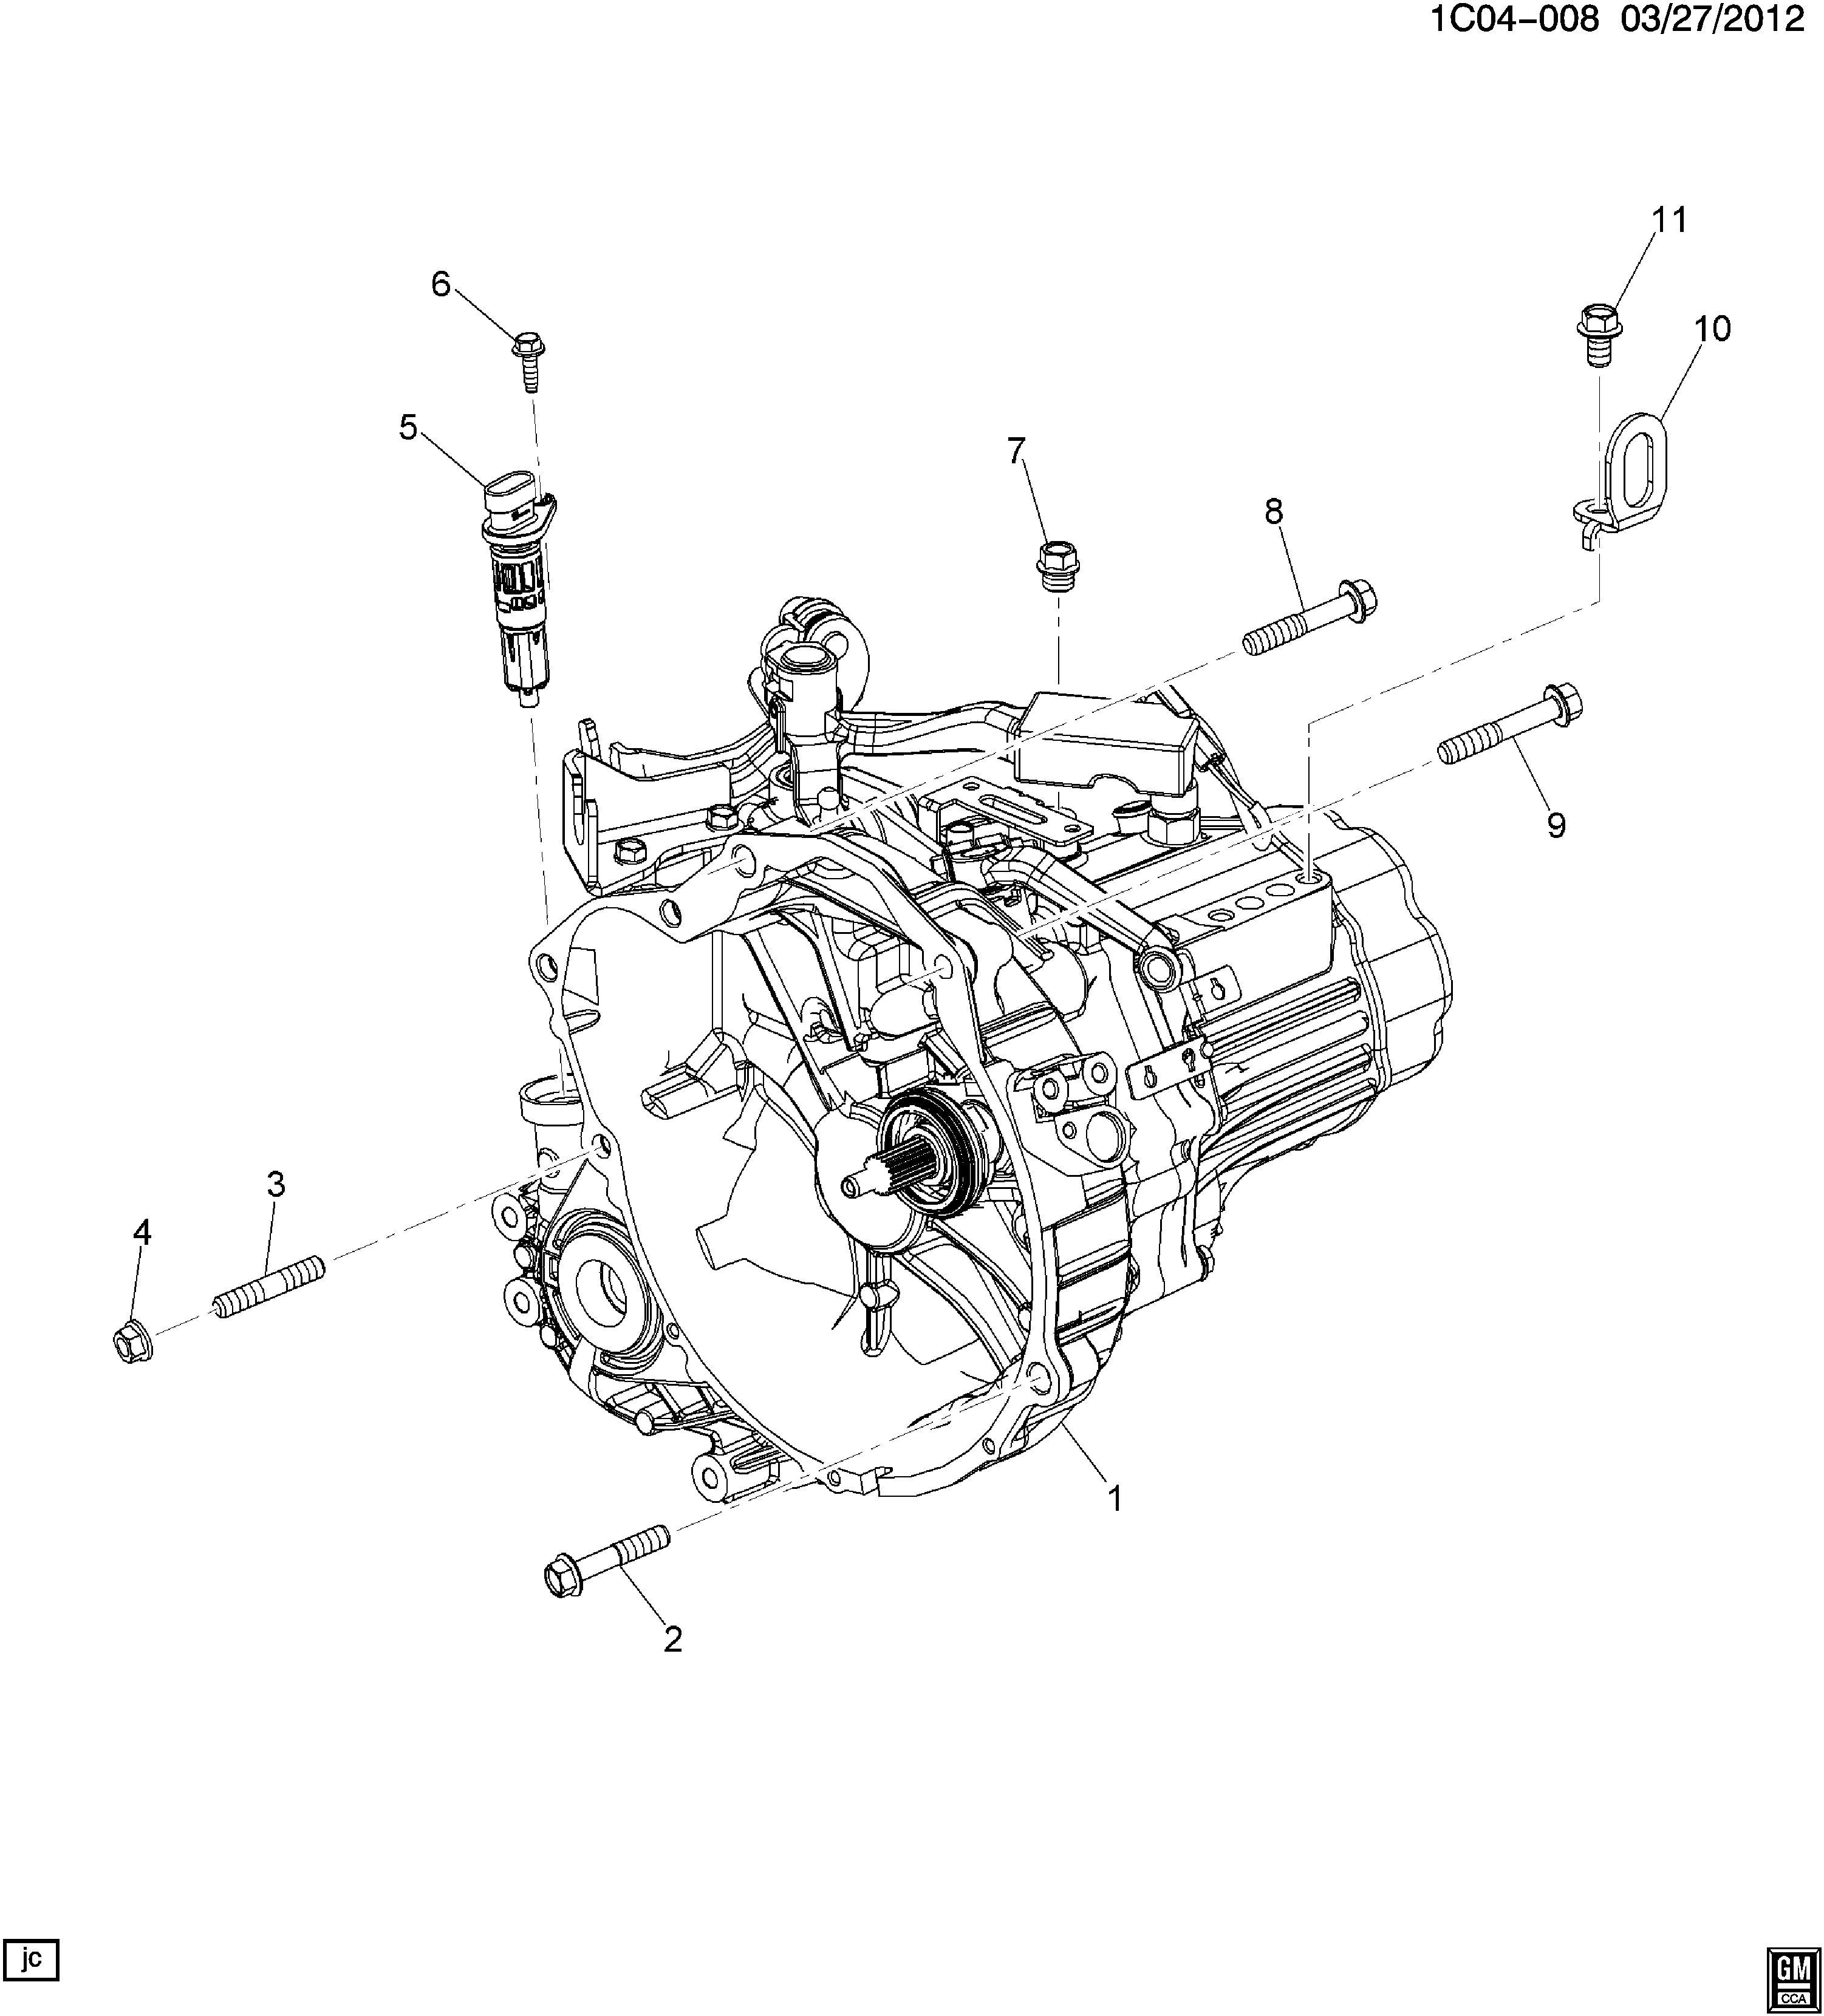 2013 Chevrolet Spark Manual Transmission Assembly. Manual